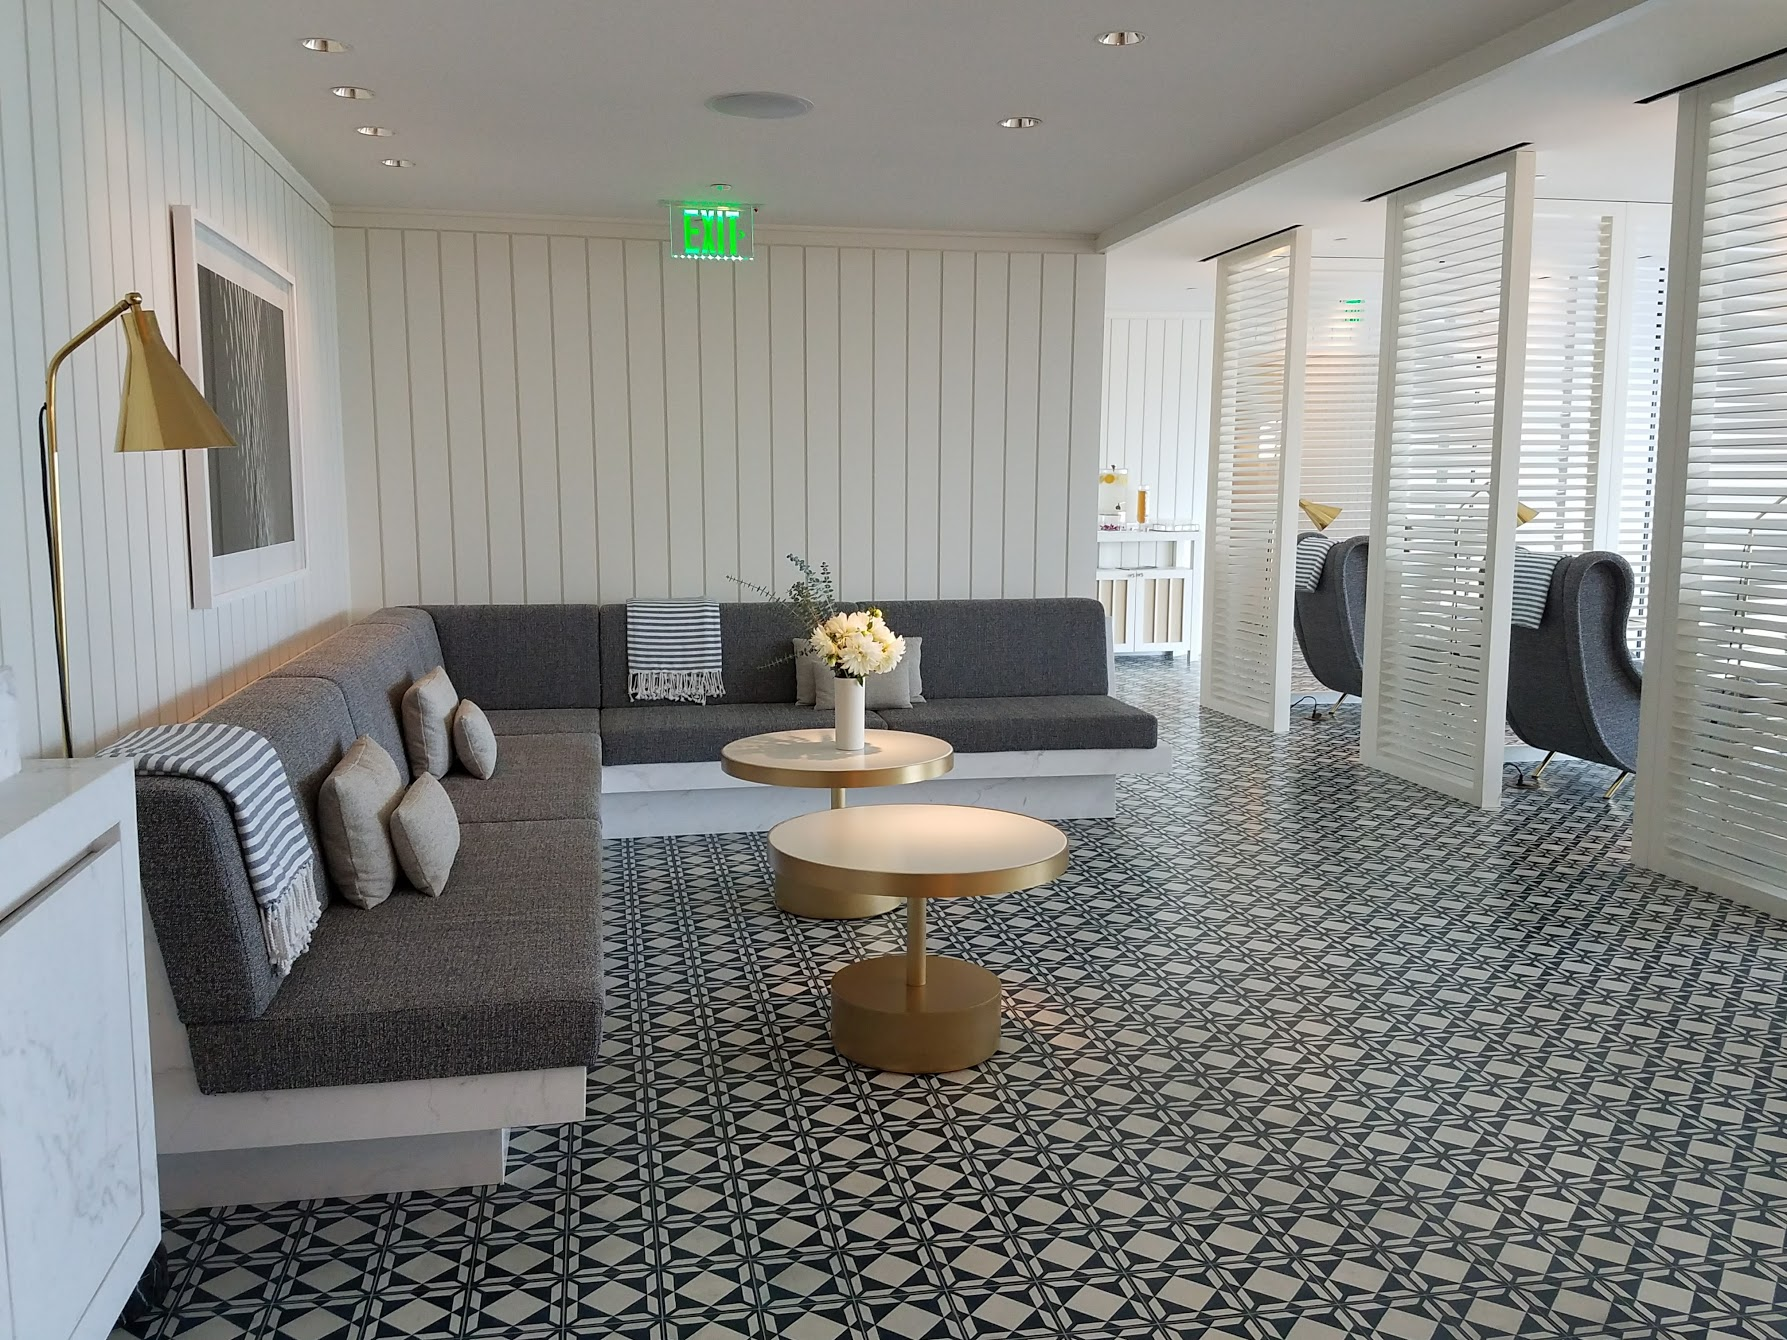 Another relaxation room.